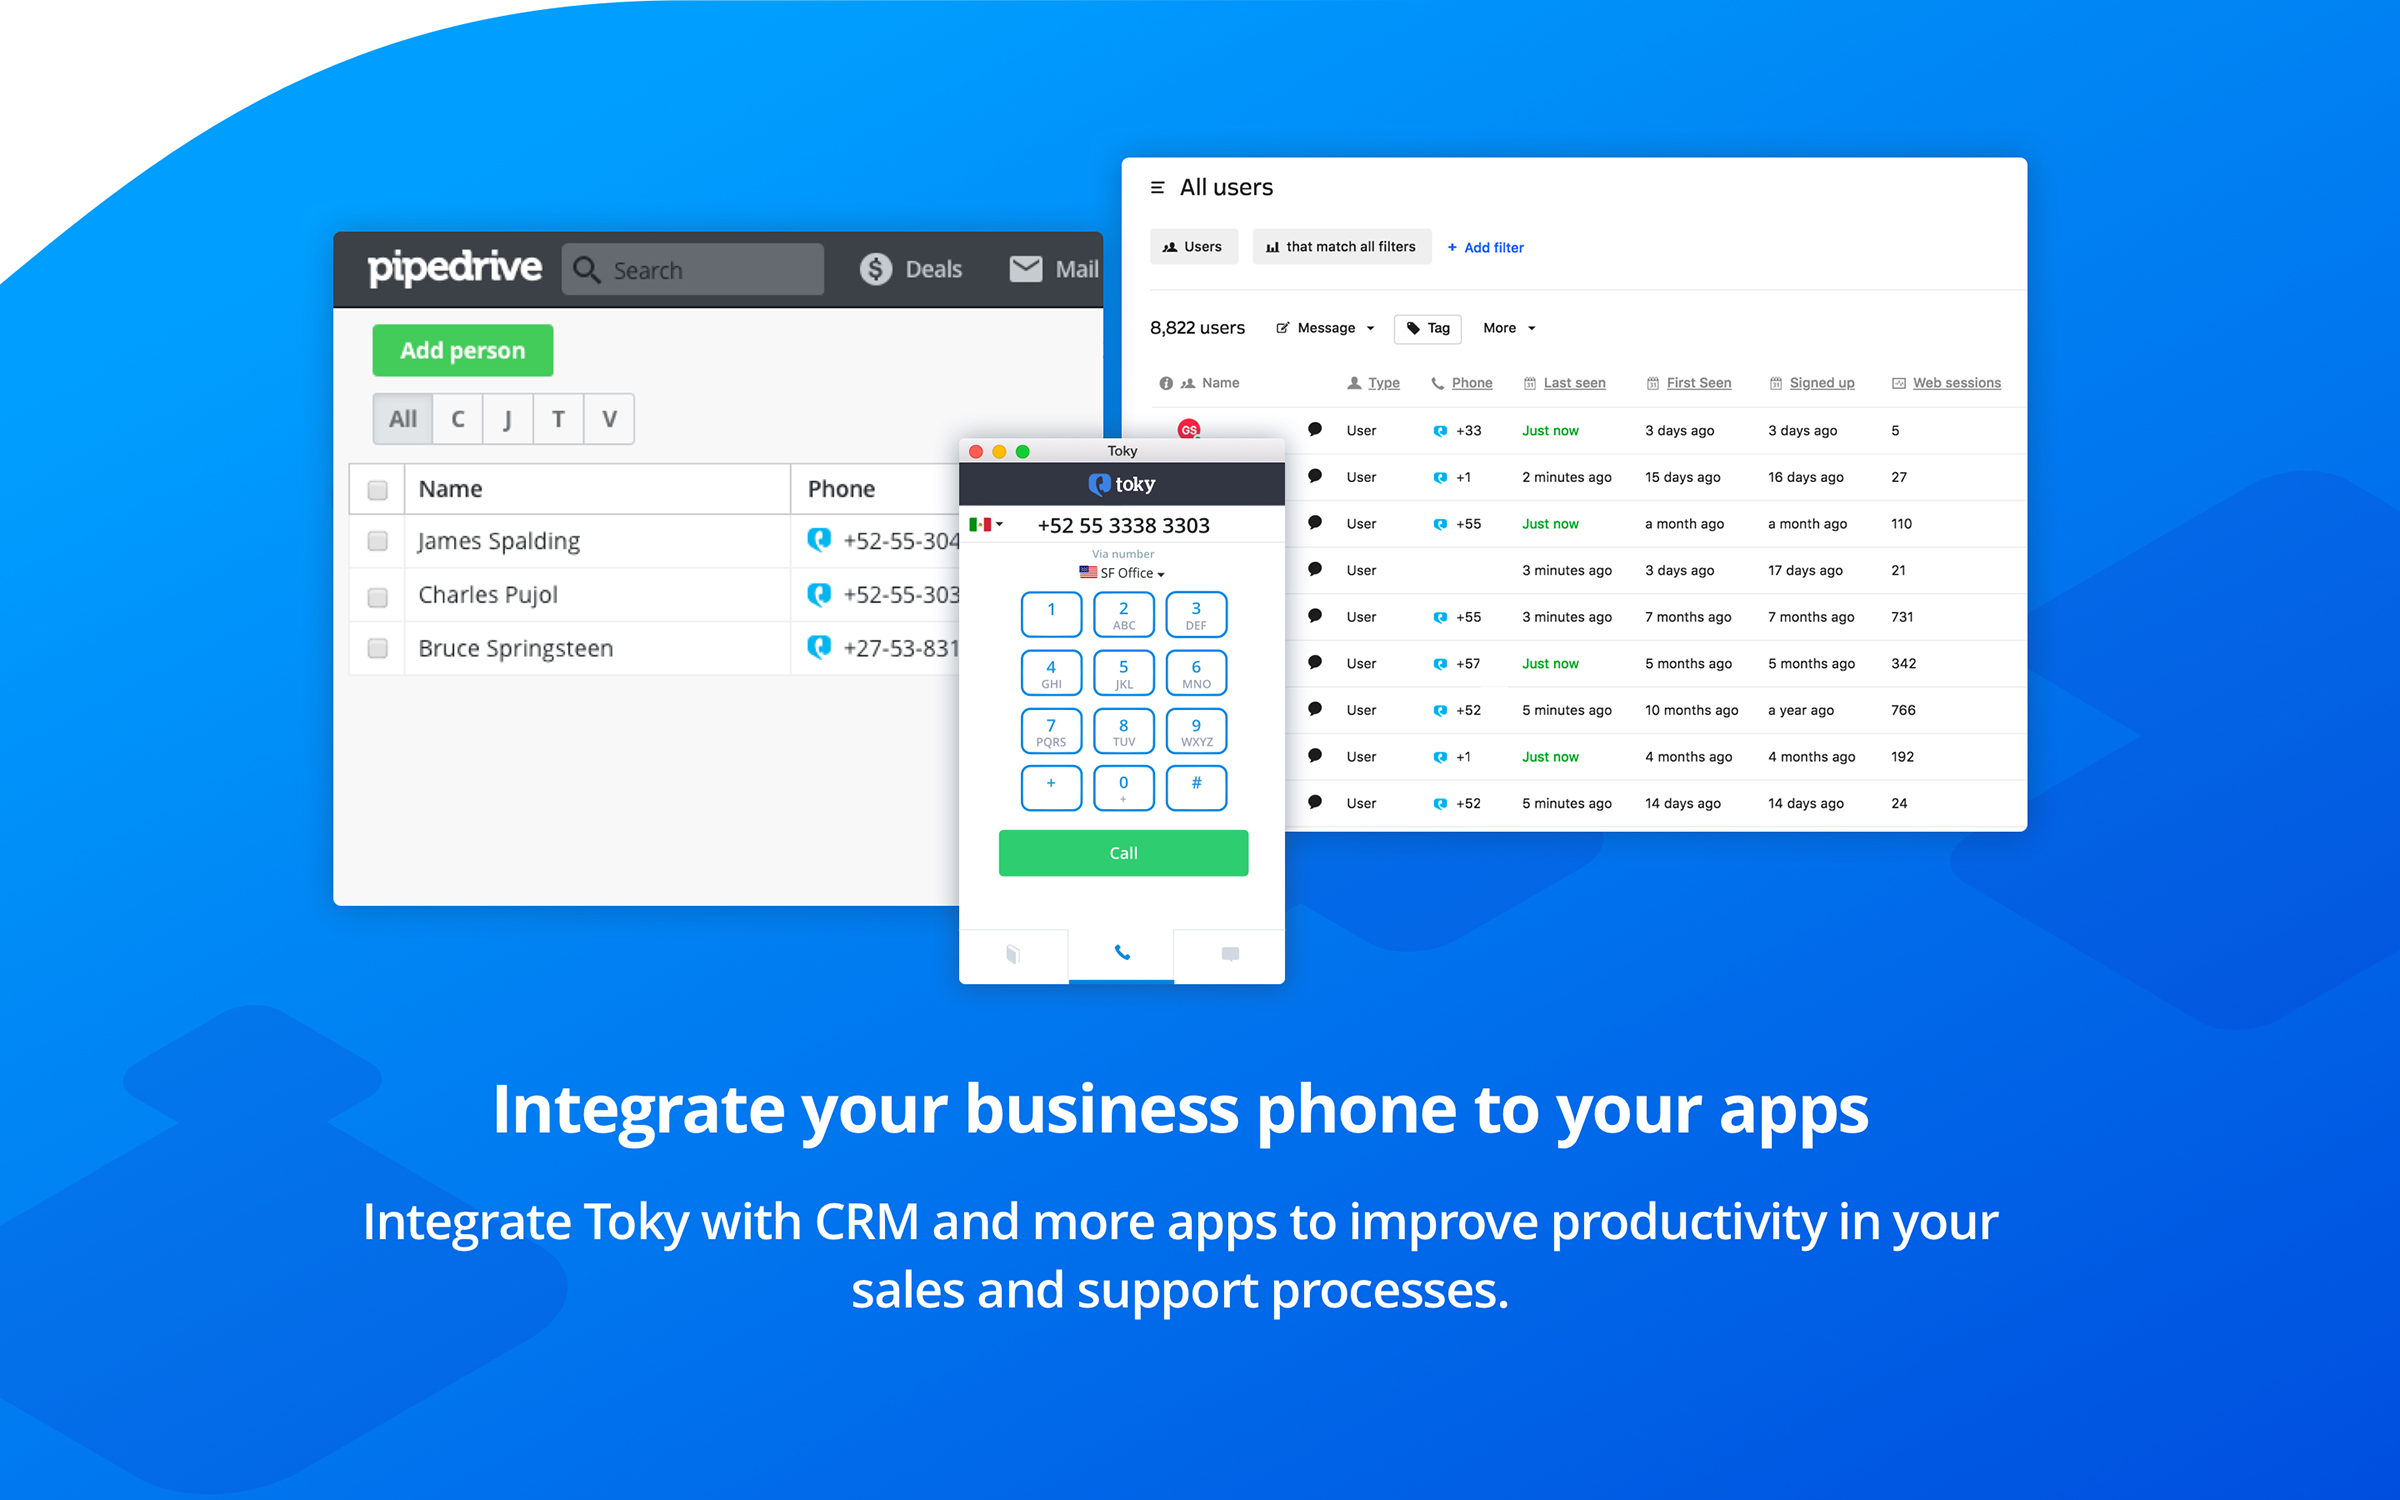 Toky Demo - Integrate your business phone to your apps